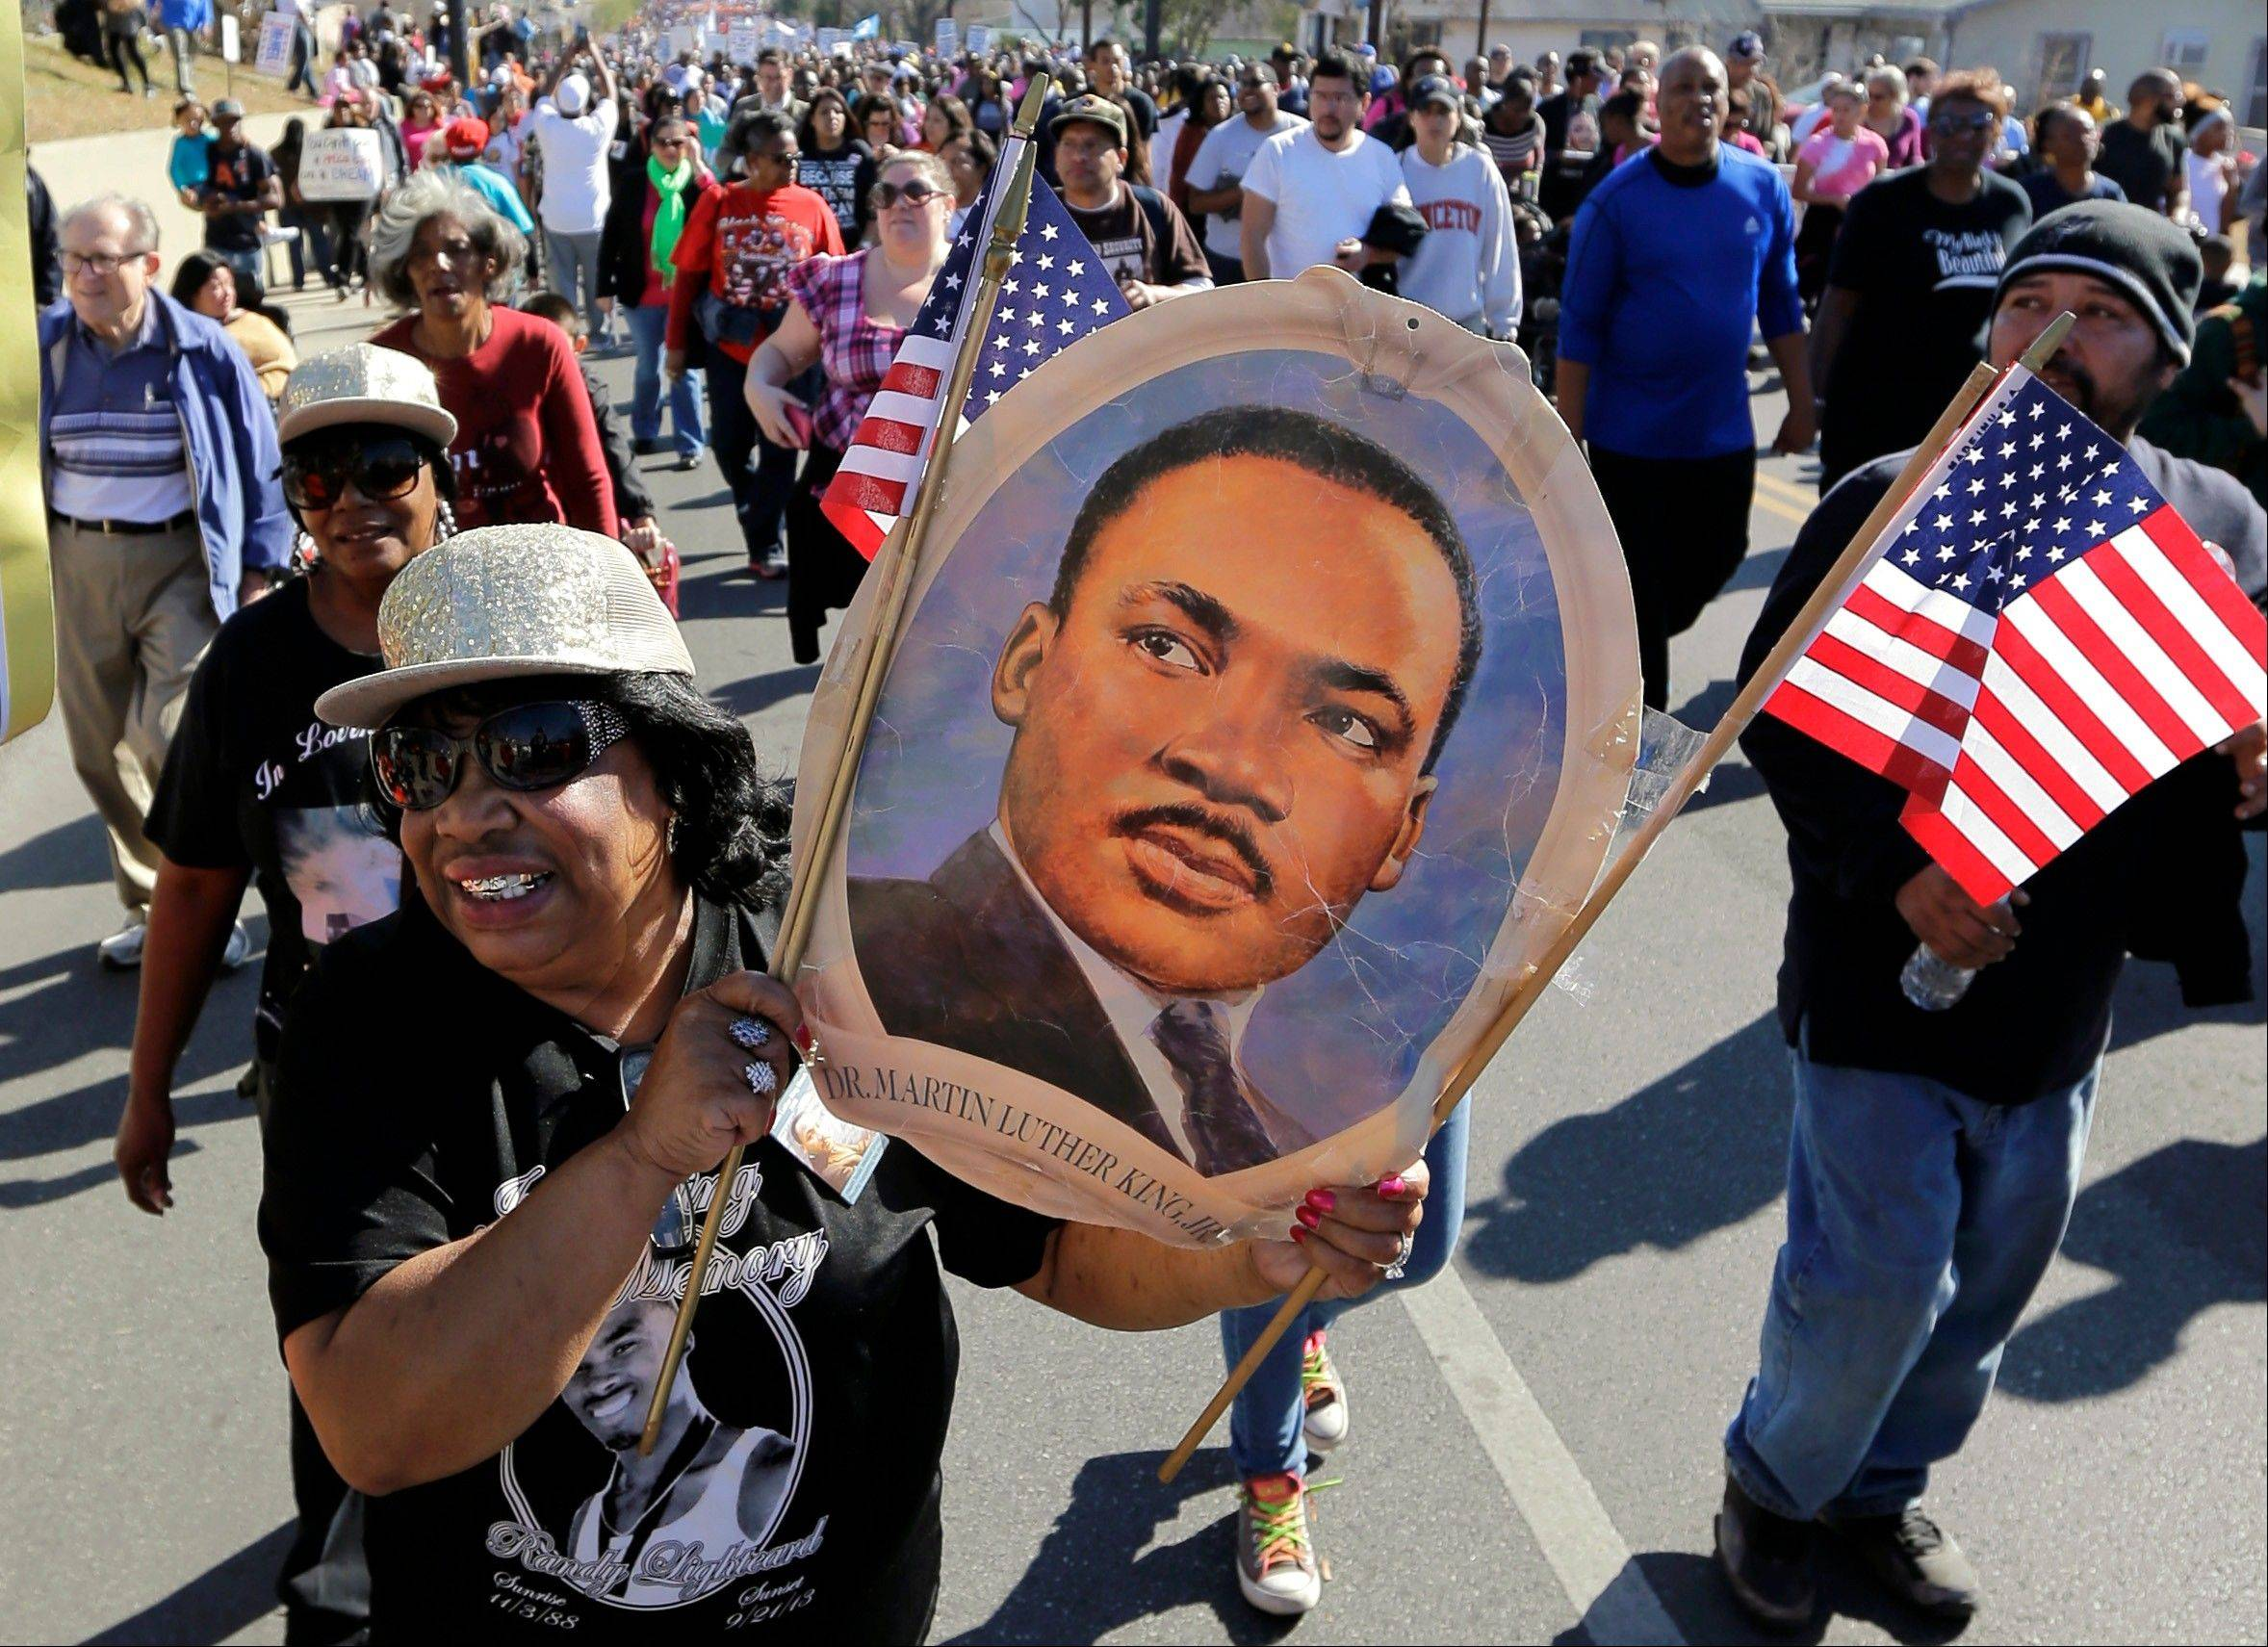 Robbie Thompson participates in a march honoring Martin Luther King Jr., Monday, Jan. 20, 2014, in San Antonio. Parades and celebrations have been scheduled across Texas to honor Martin Luther King Jr. on the federal holiday in his name.